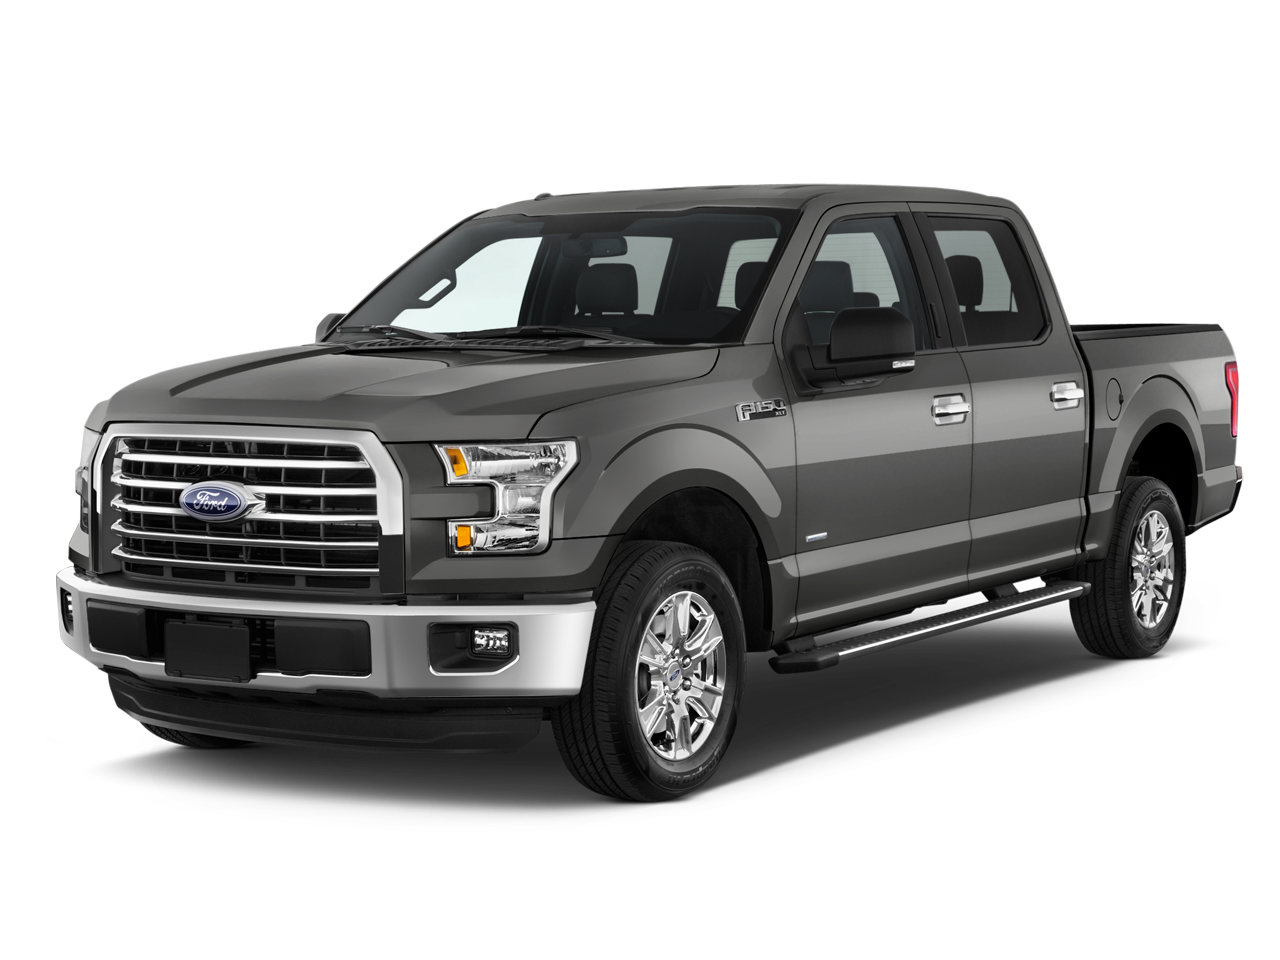 new 2017 ford f 150 near ottumwa ia clemons inc of ottumwa. Black Bedroom Furniture Sets. Home Design Ideas